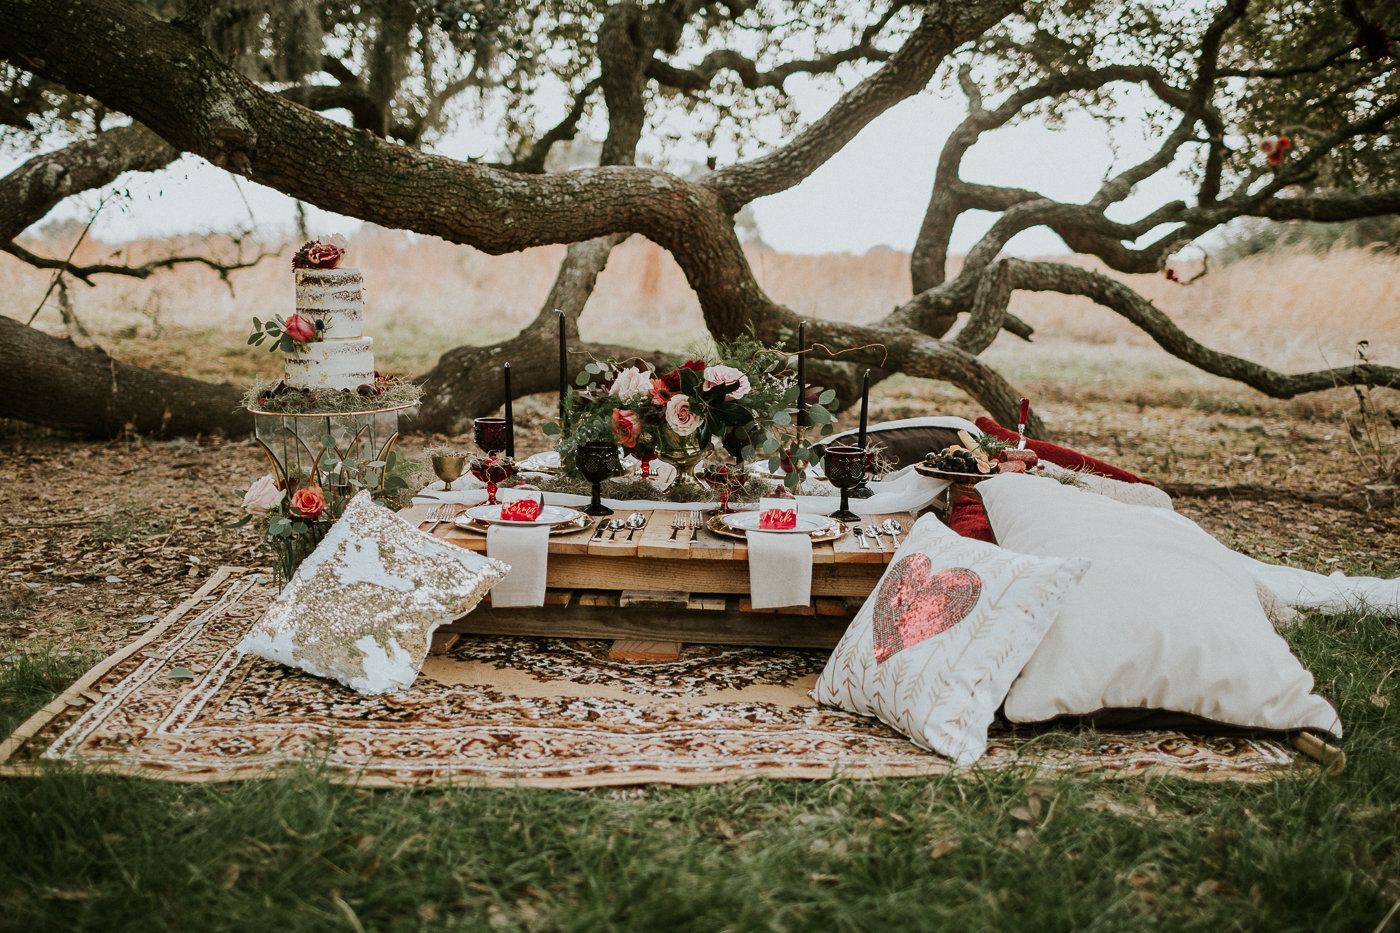 vintage rock and roll wedding tablescape in the forest